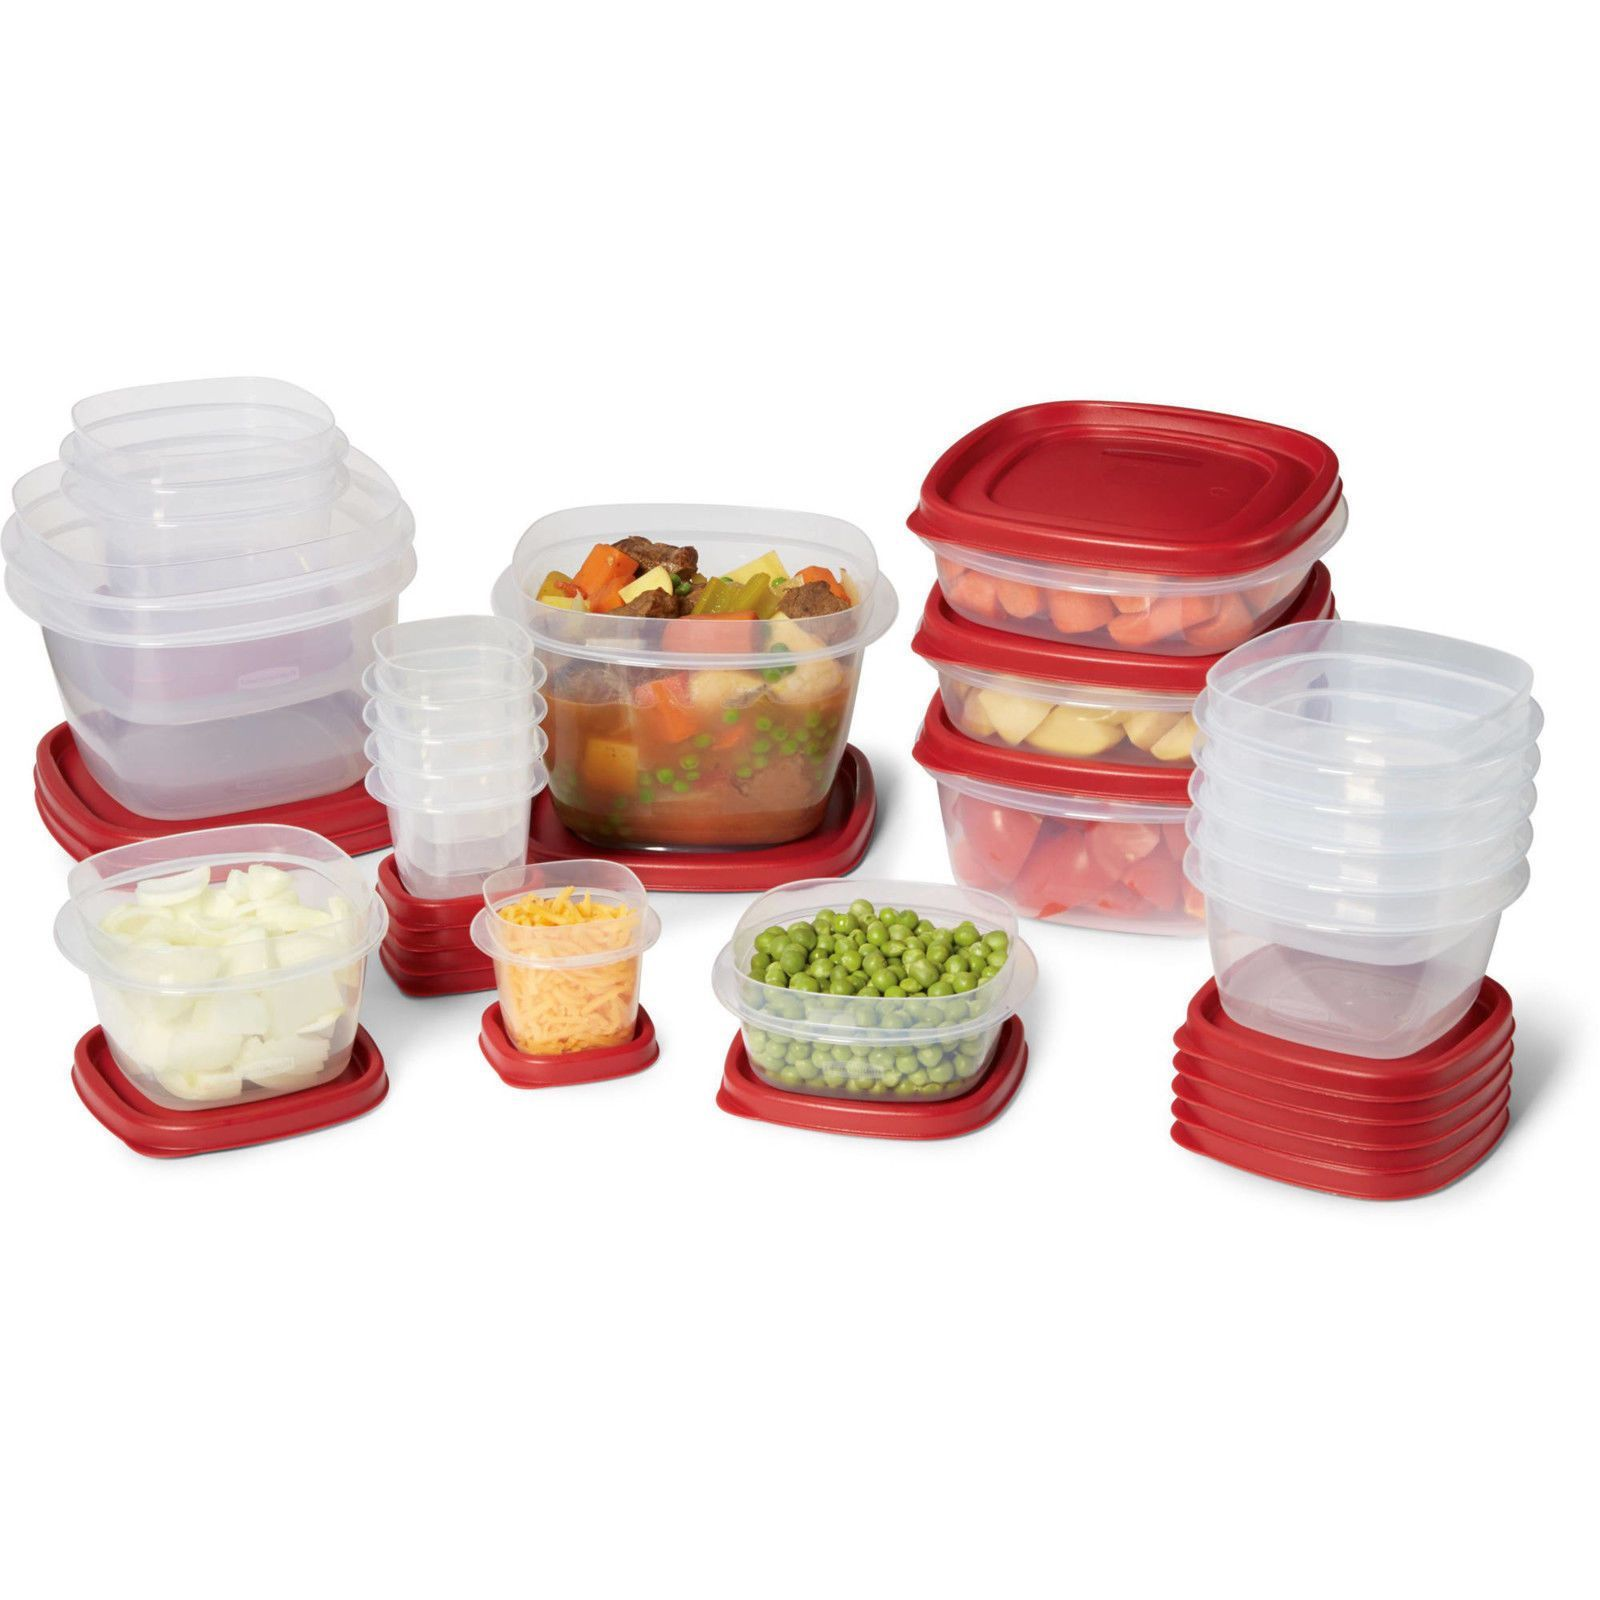 Pin On Food Storage Containers Organization Ideas